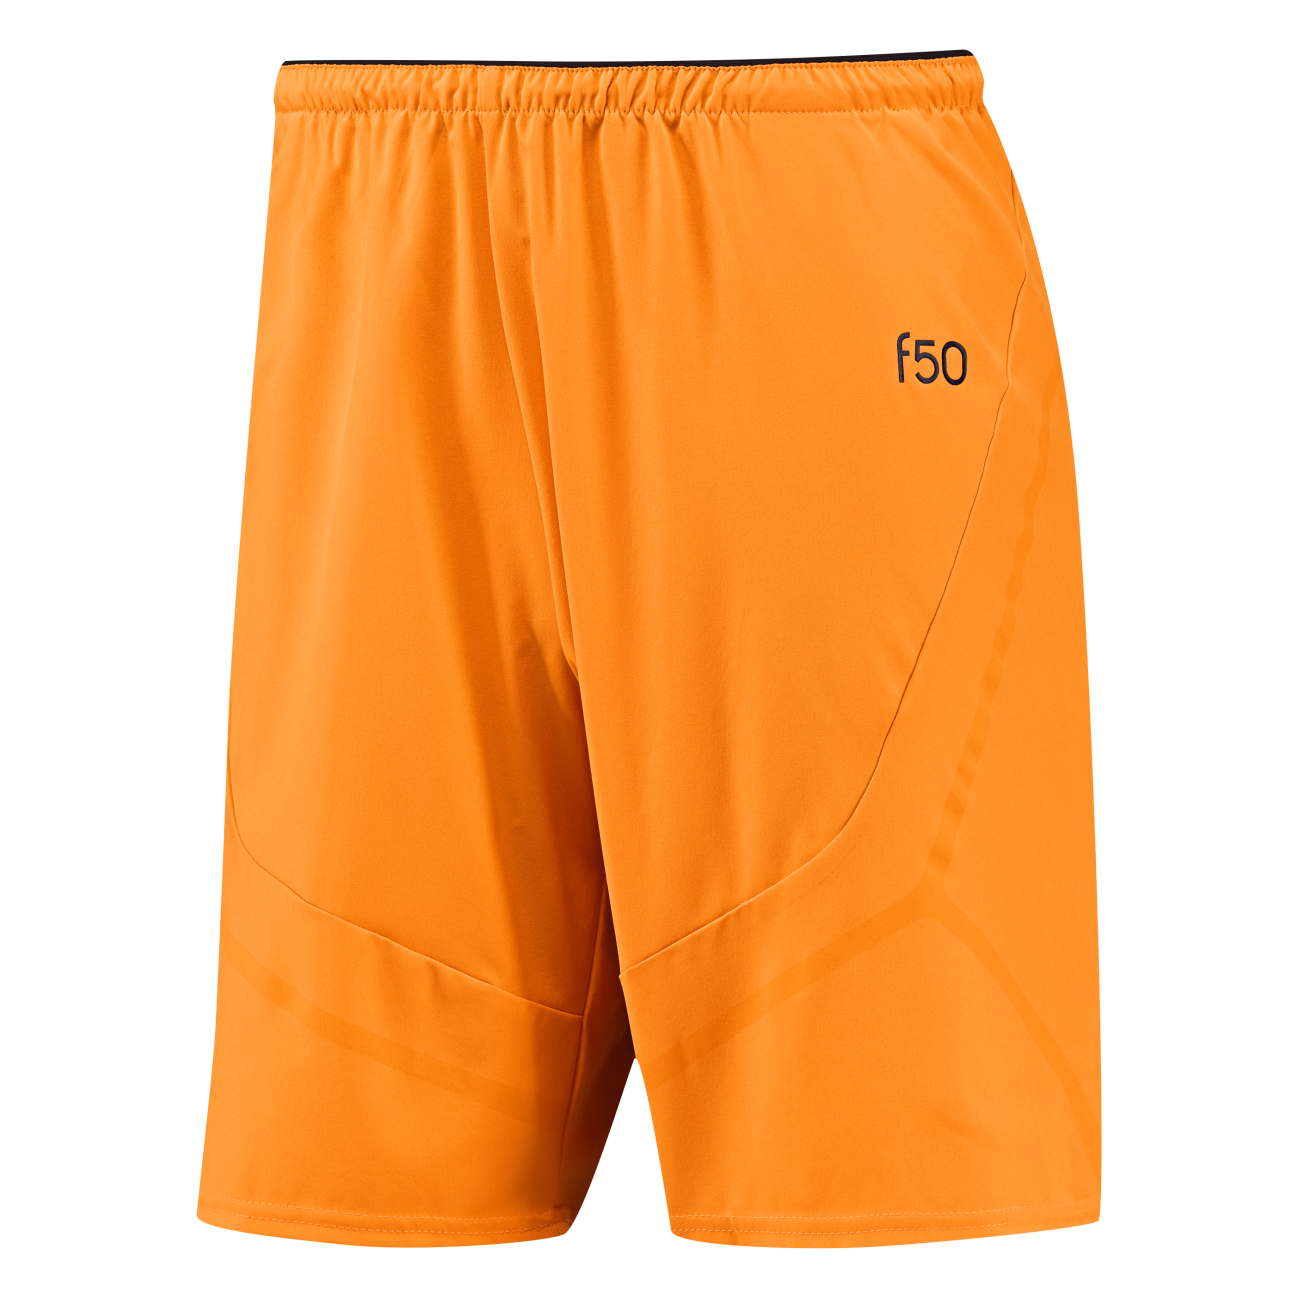 Adidas adiZero F50 Training Shorts Orange